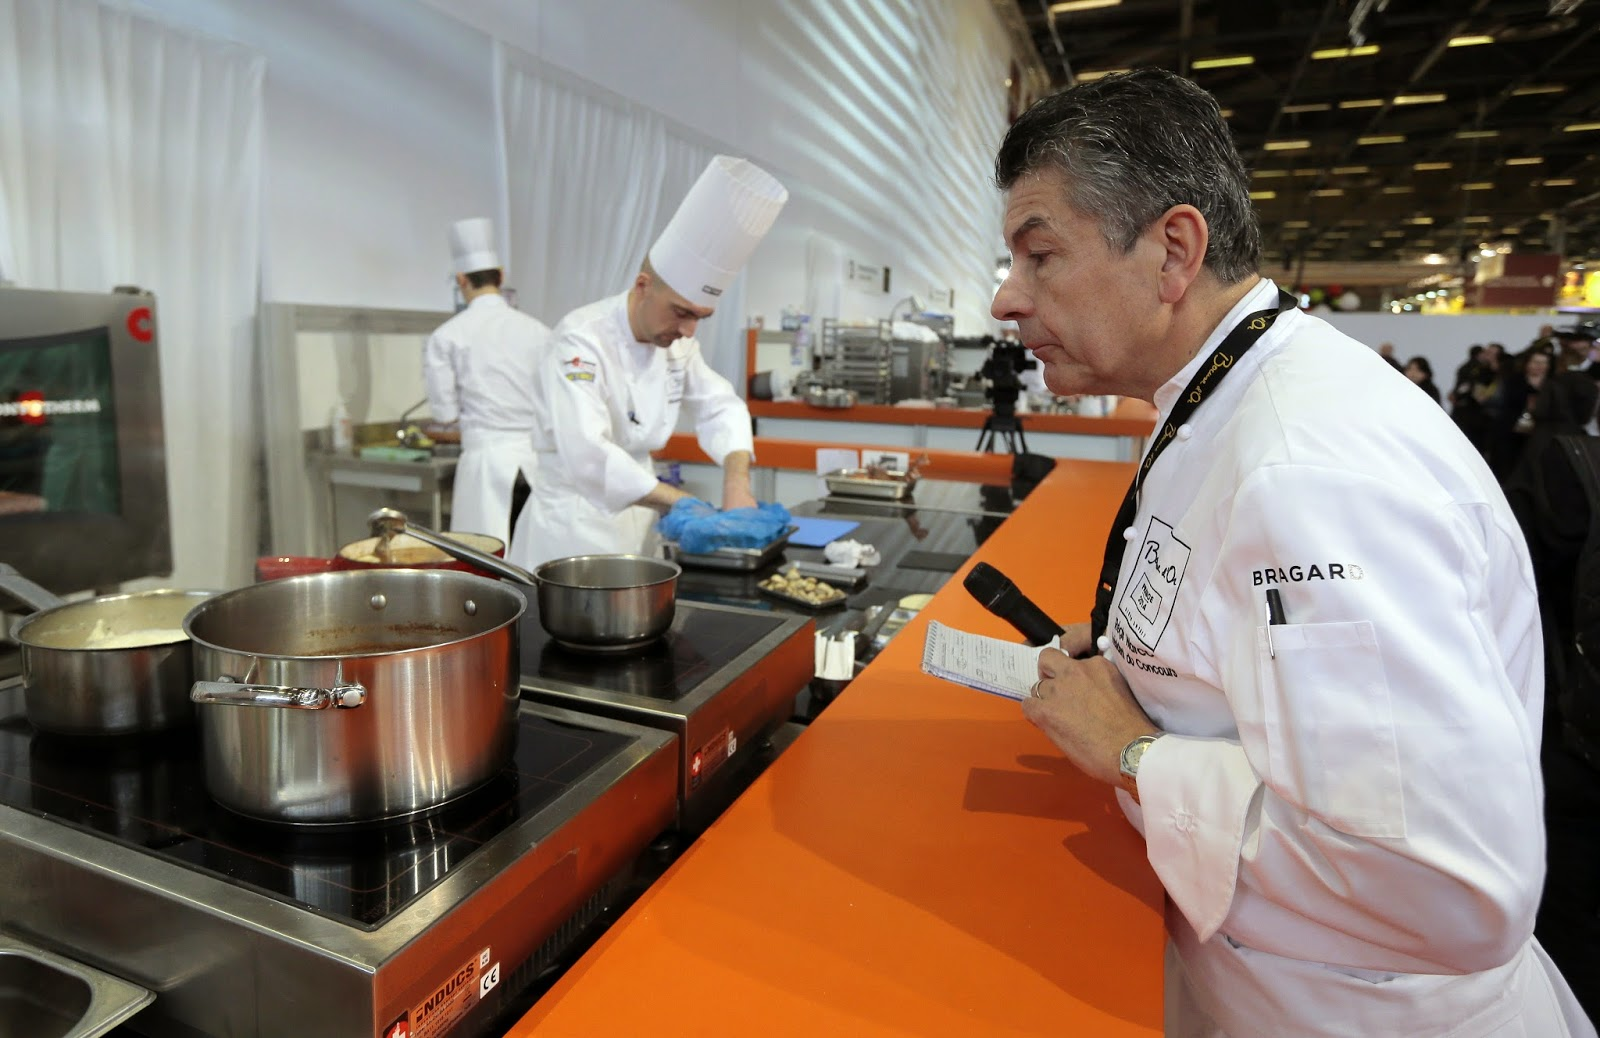 Bocuse d'Or, Chef, Chef championship, Cooking, Food, France, French chef, News, Paris, Participants, Regis Marcon, Villepinte, World Cooking Contest,